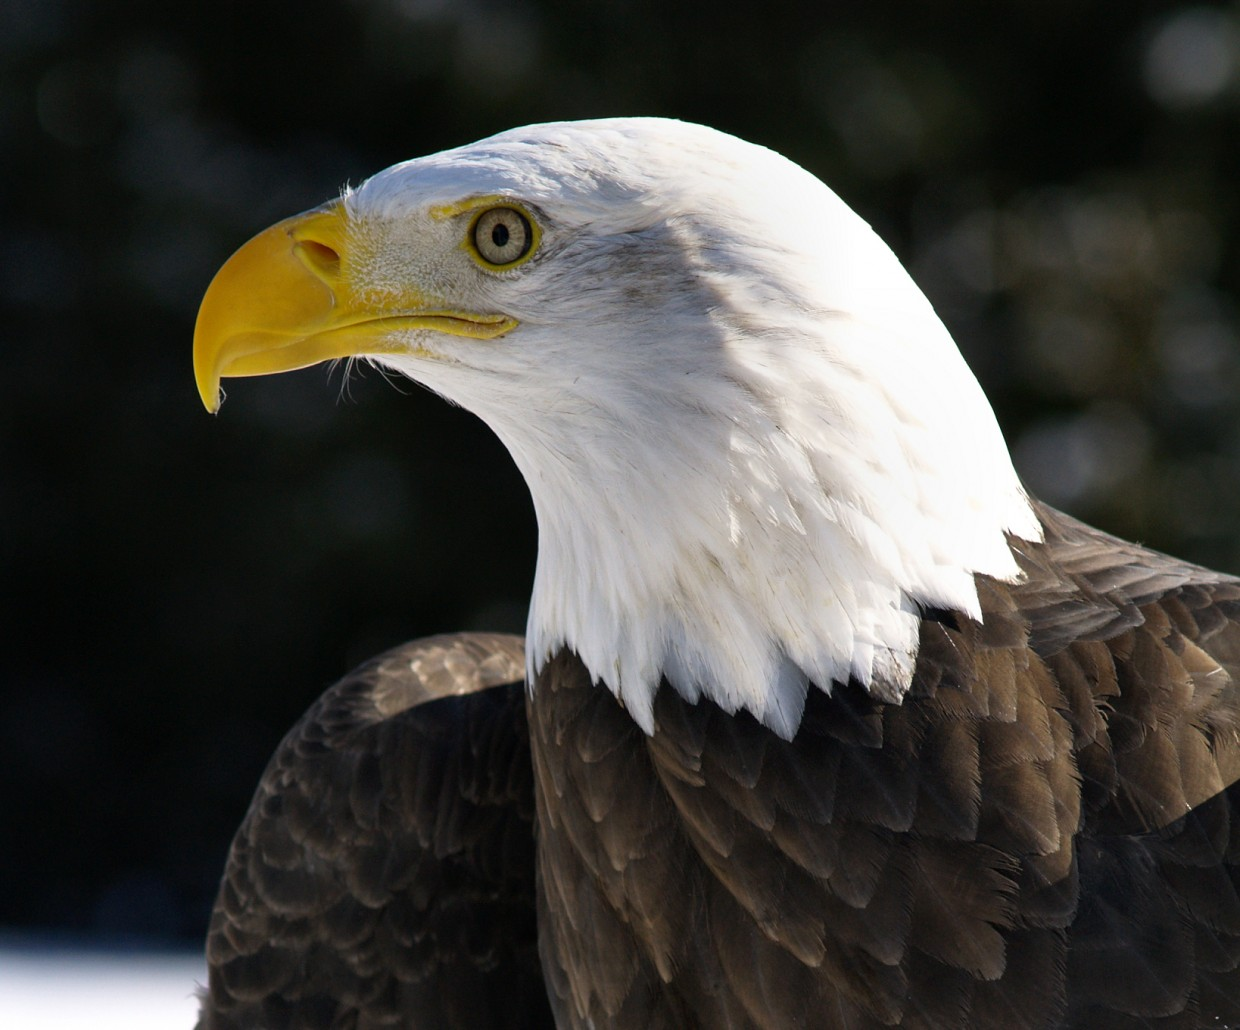 American Eagle Day – A Special Day for a Special Bird